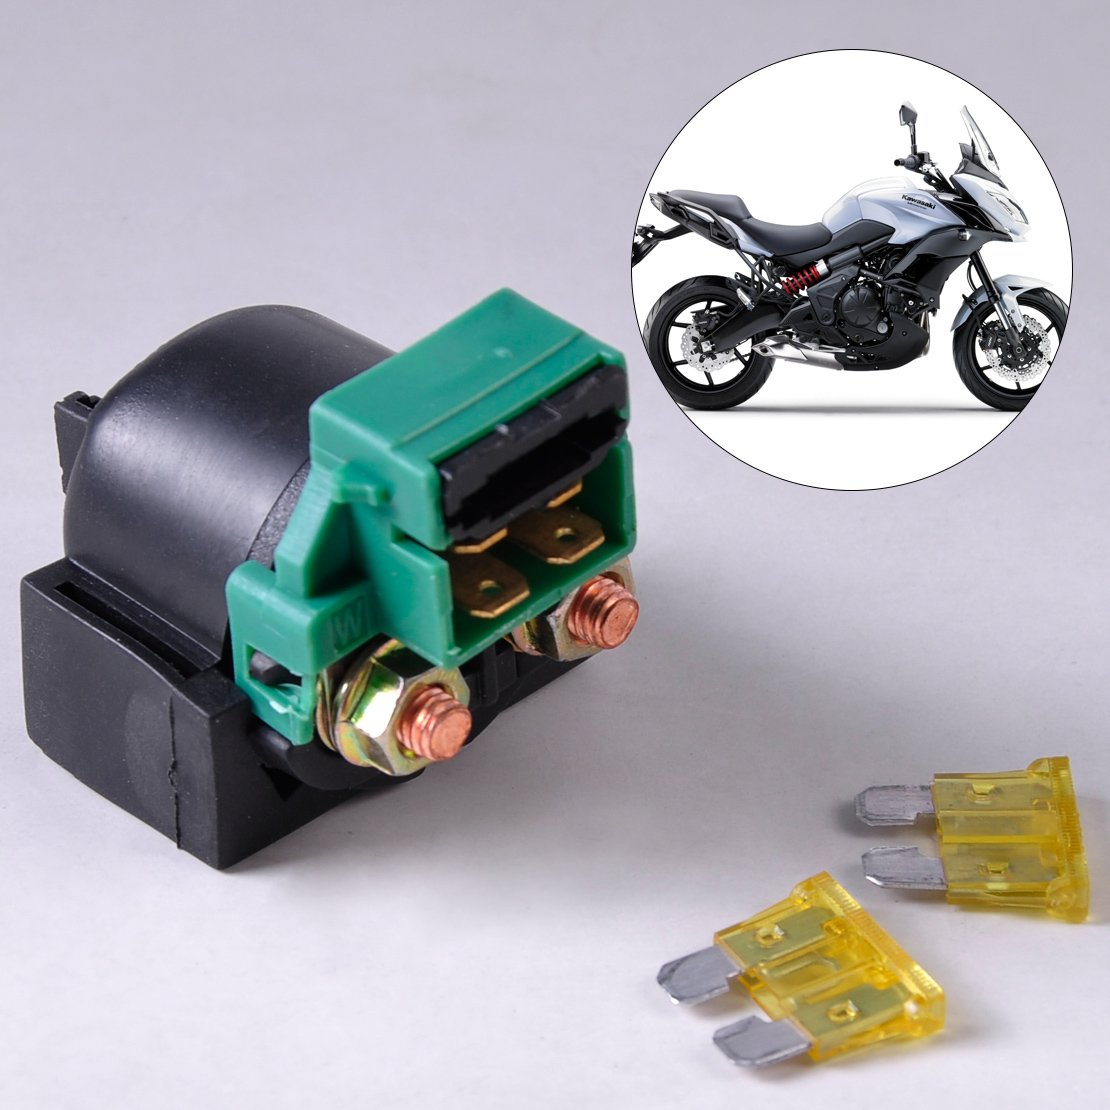 Amazon.com: CALAP-STORE - 12V DC Motorcycle Starter Relay ...